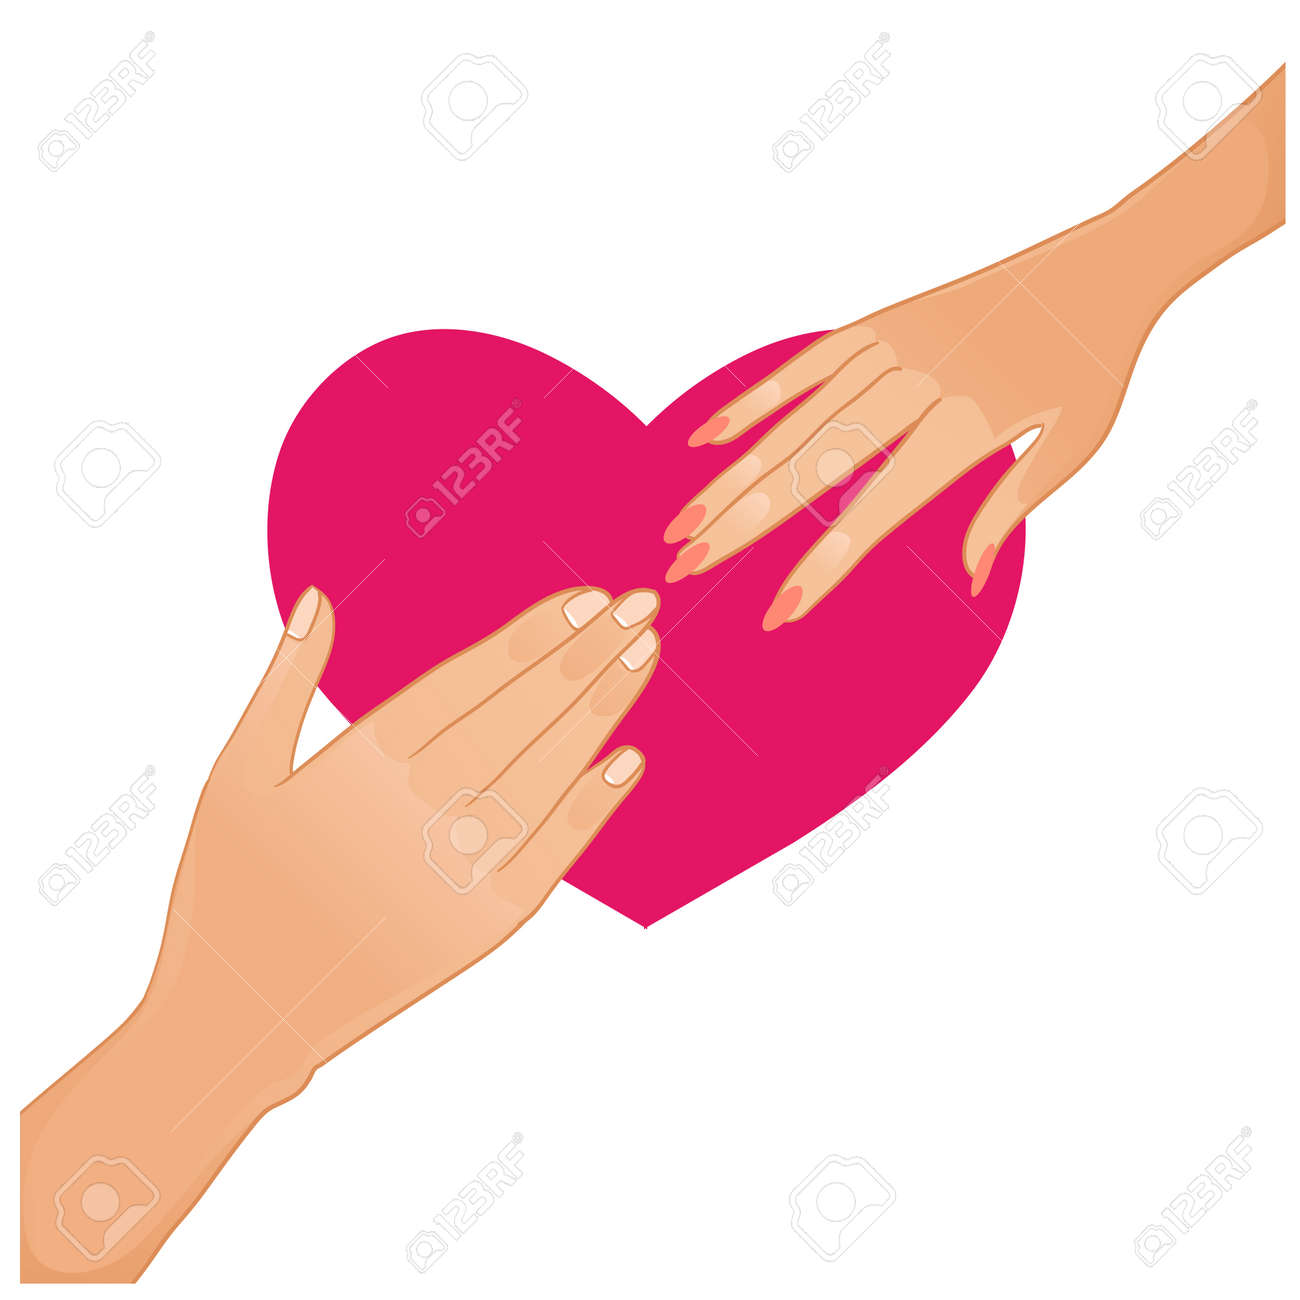 Woman and man hands on the background with heart Stock Vector - 23113295